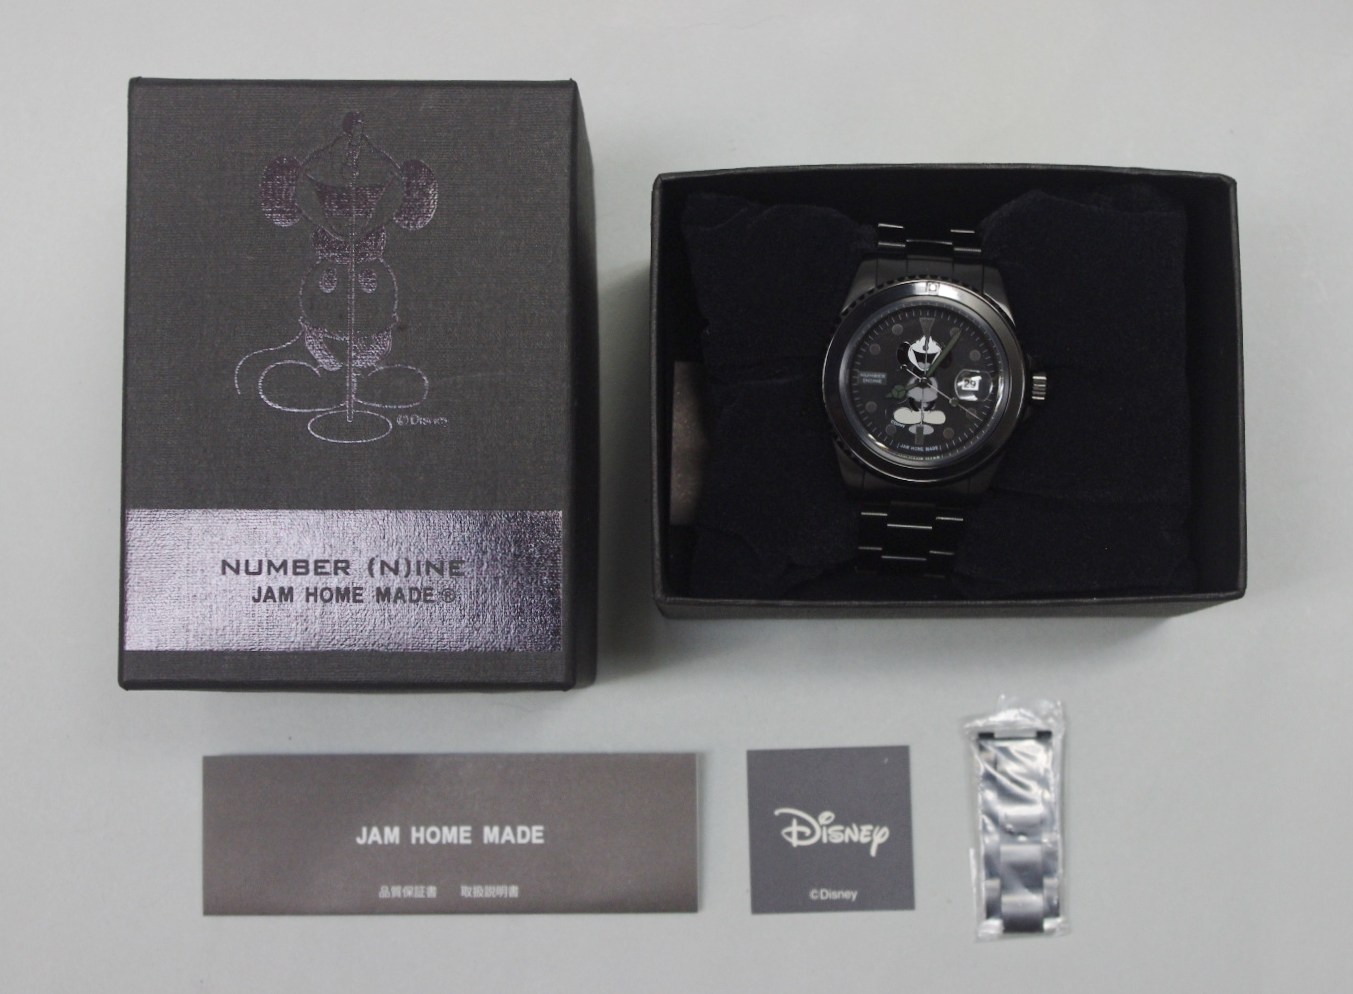 JAMHOMEMADE×NUMBER(N) INE DISNEY 미키마우스 손목시계 MICKEY MOUSE WATCH TYPE-A